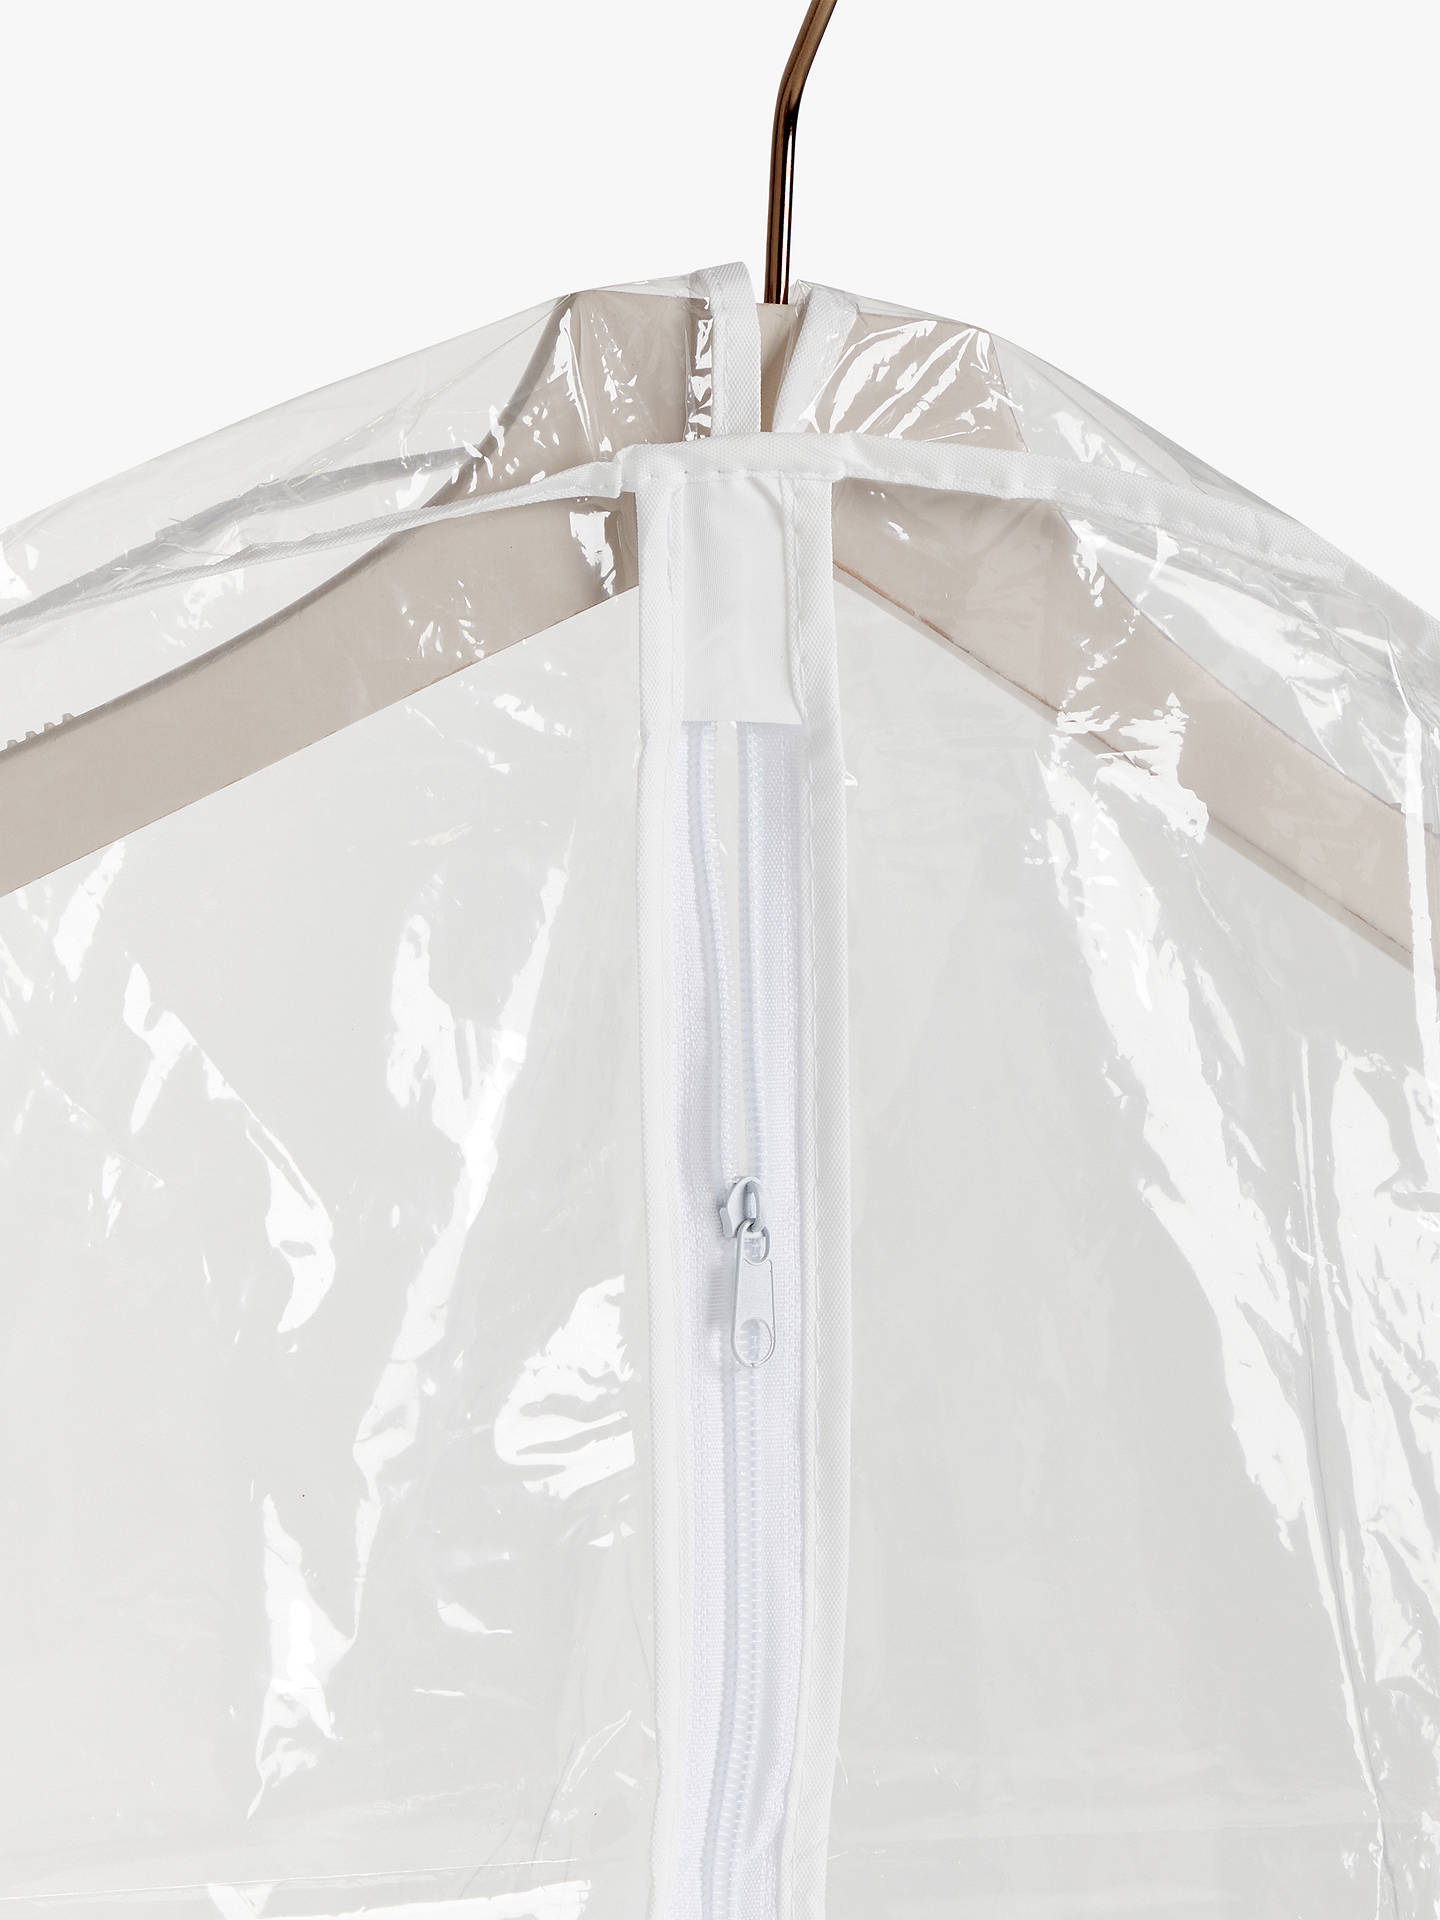 Buy John Lewis & Partners Transparent Long Clothes Covers, Pack of 2 Online at johnlewis.com